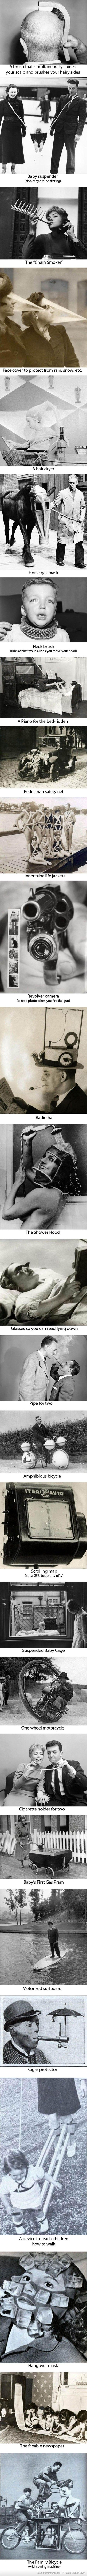 27 Insane Inventions From The Past... Although I must say those glasses to read laying down are GENIUS I need those in my life!